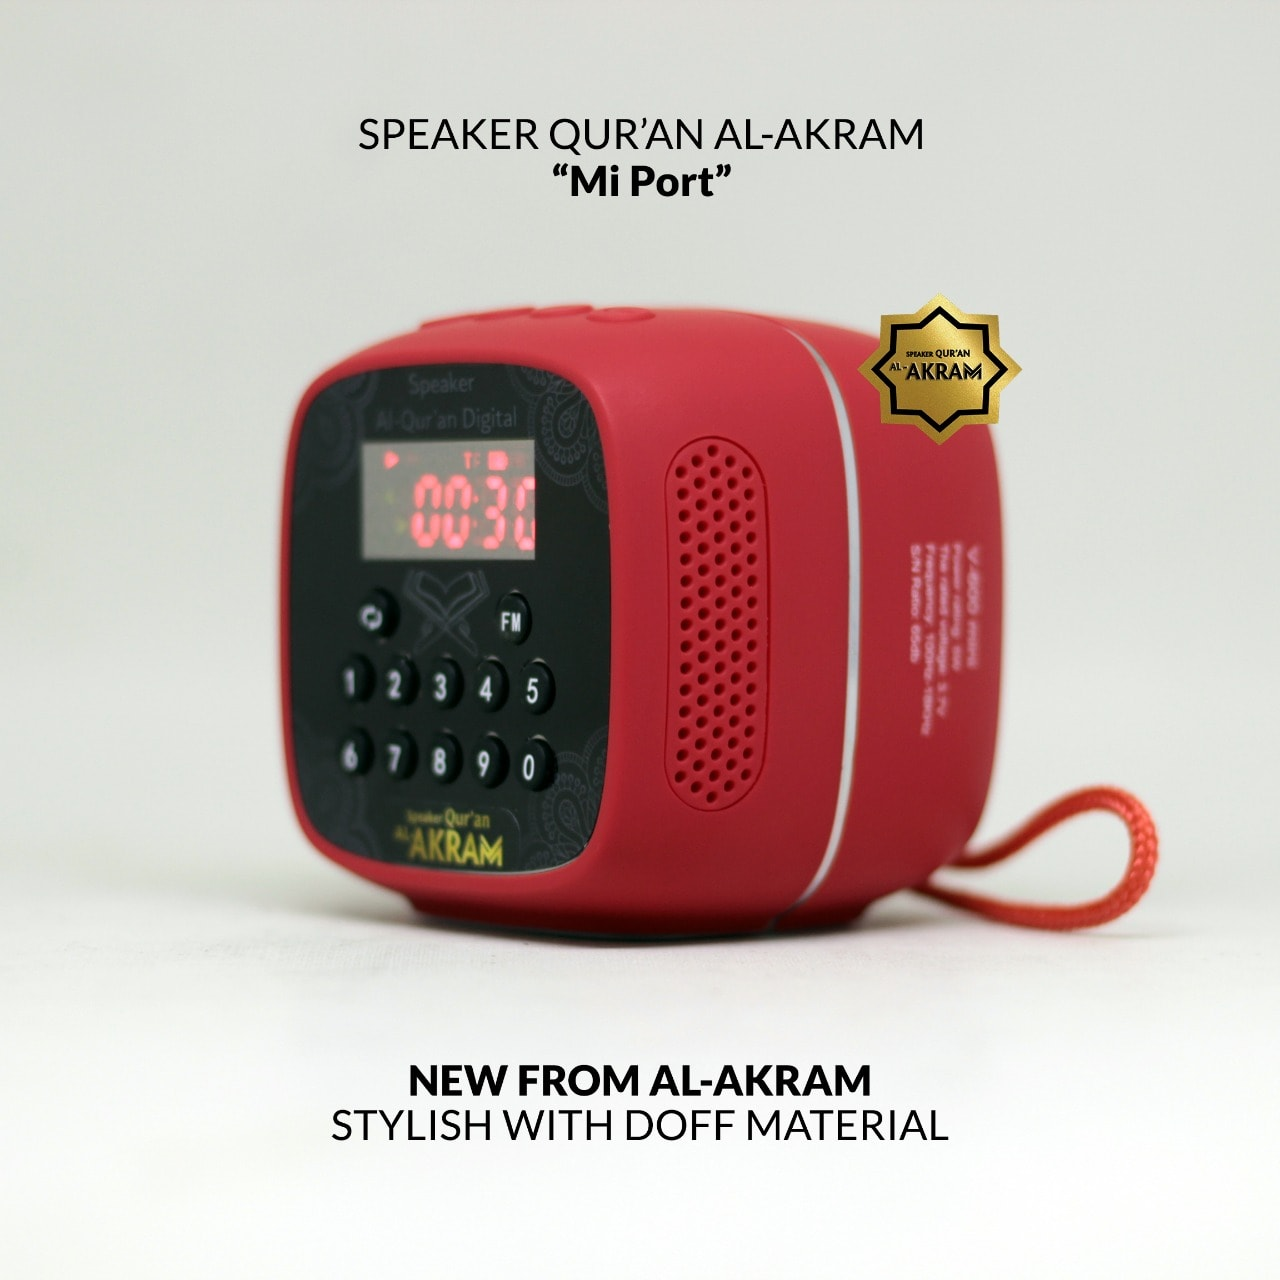 speaker-quran-al-akram-mi-port-side-min